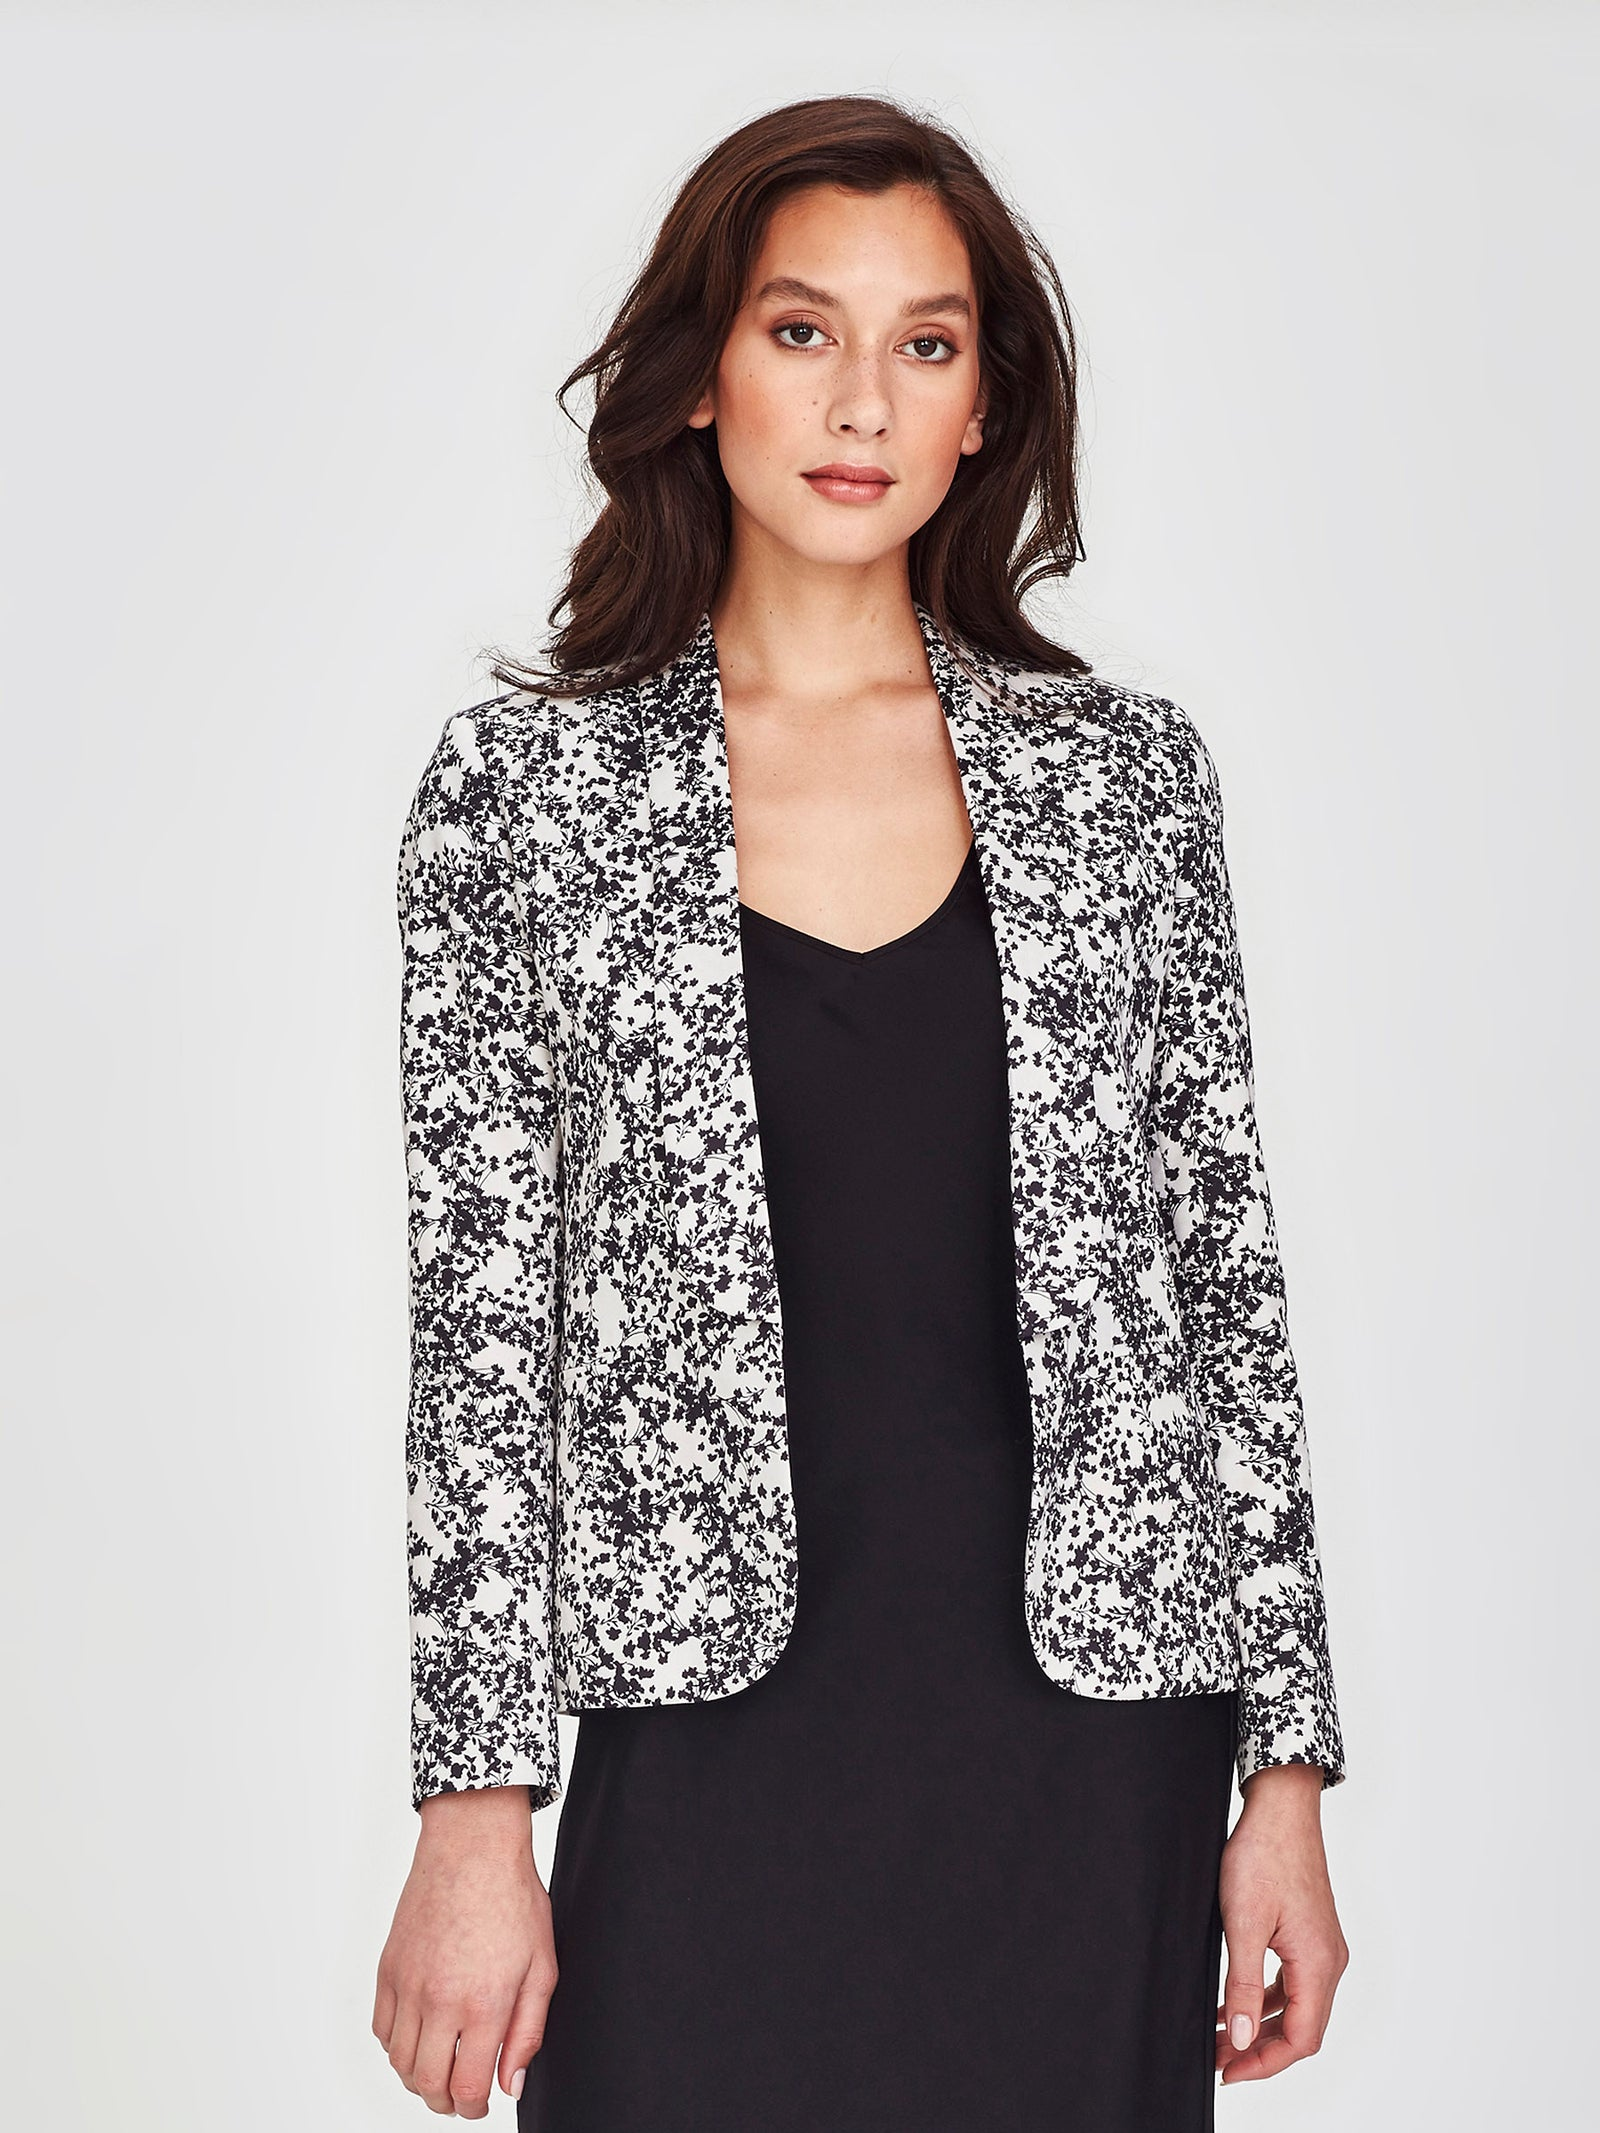 Tuxe Jacket (Gypsophila Cotton) Silhouette